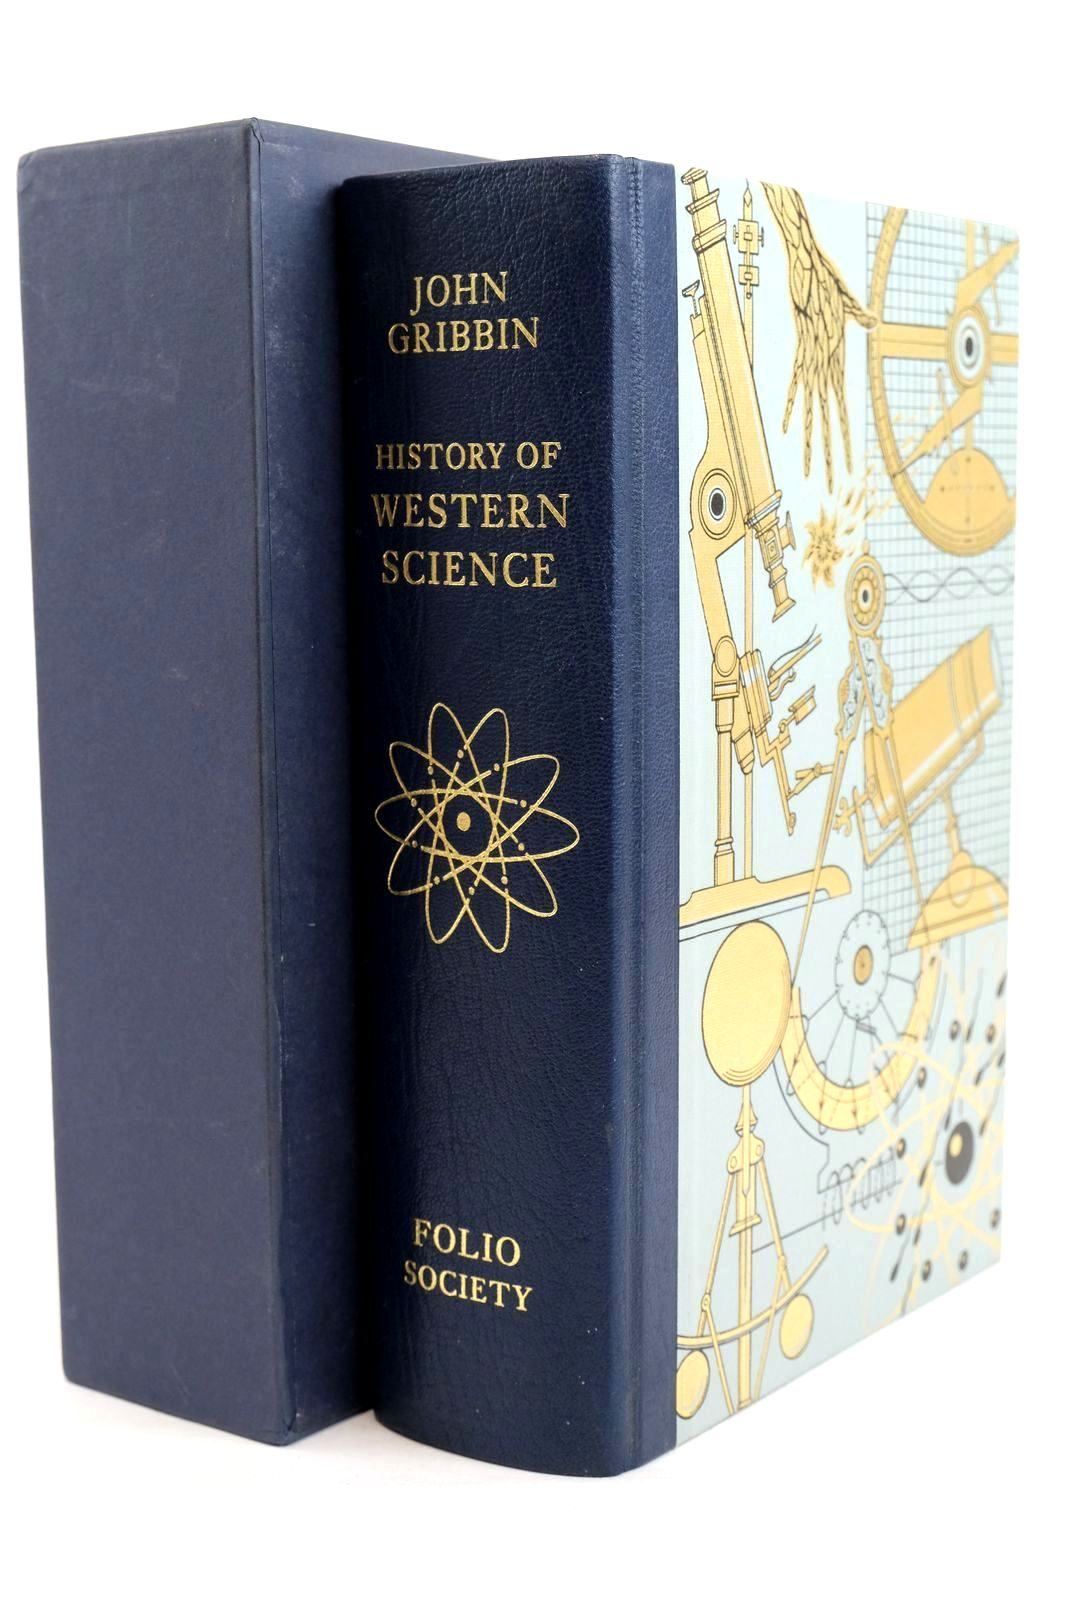 Photo of HISTORY OF WESTERN SCIENCE 1543-2001 written by Gribbin, John published by Folio Society (STOCK CODE: 1320474)  for sale by Stella & Rose's Books